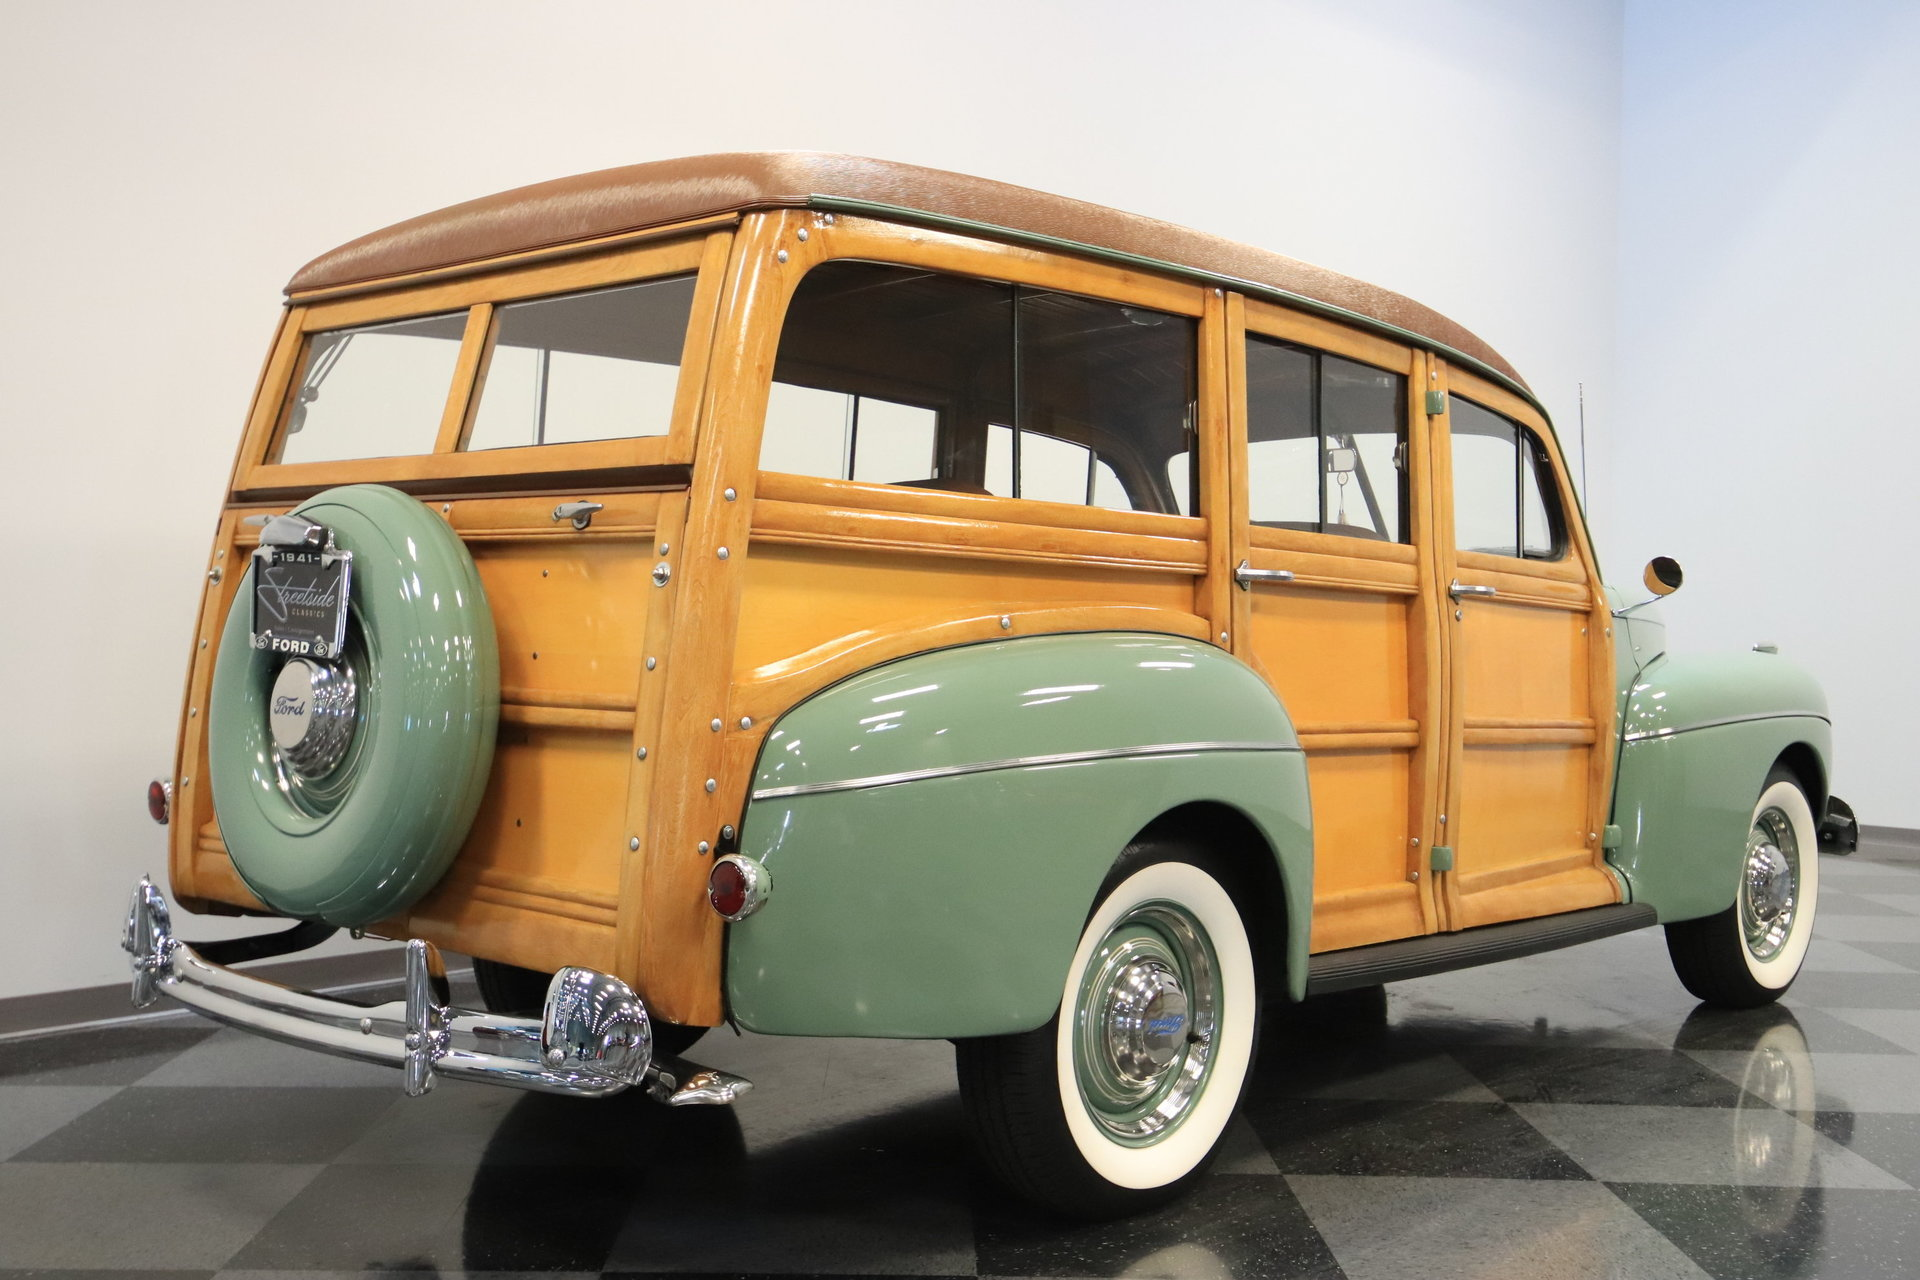 1941 Ford Super Deluxe Streetside Classics The Nations Trusted Mercury 4 Door Sedan View 360